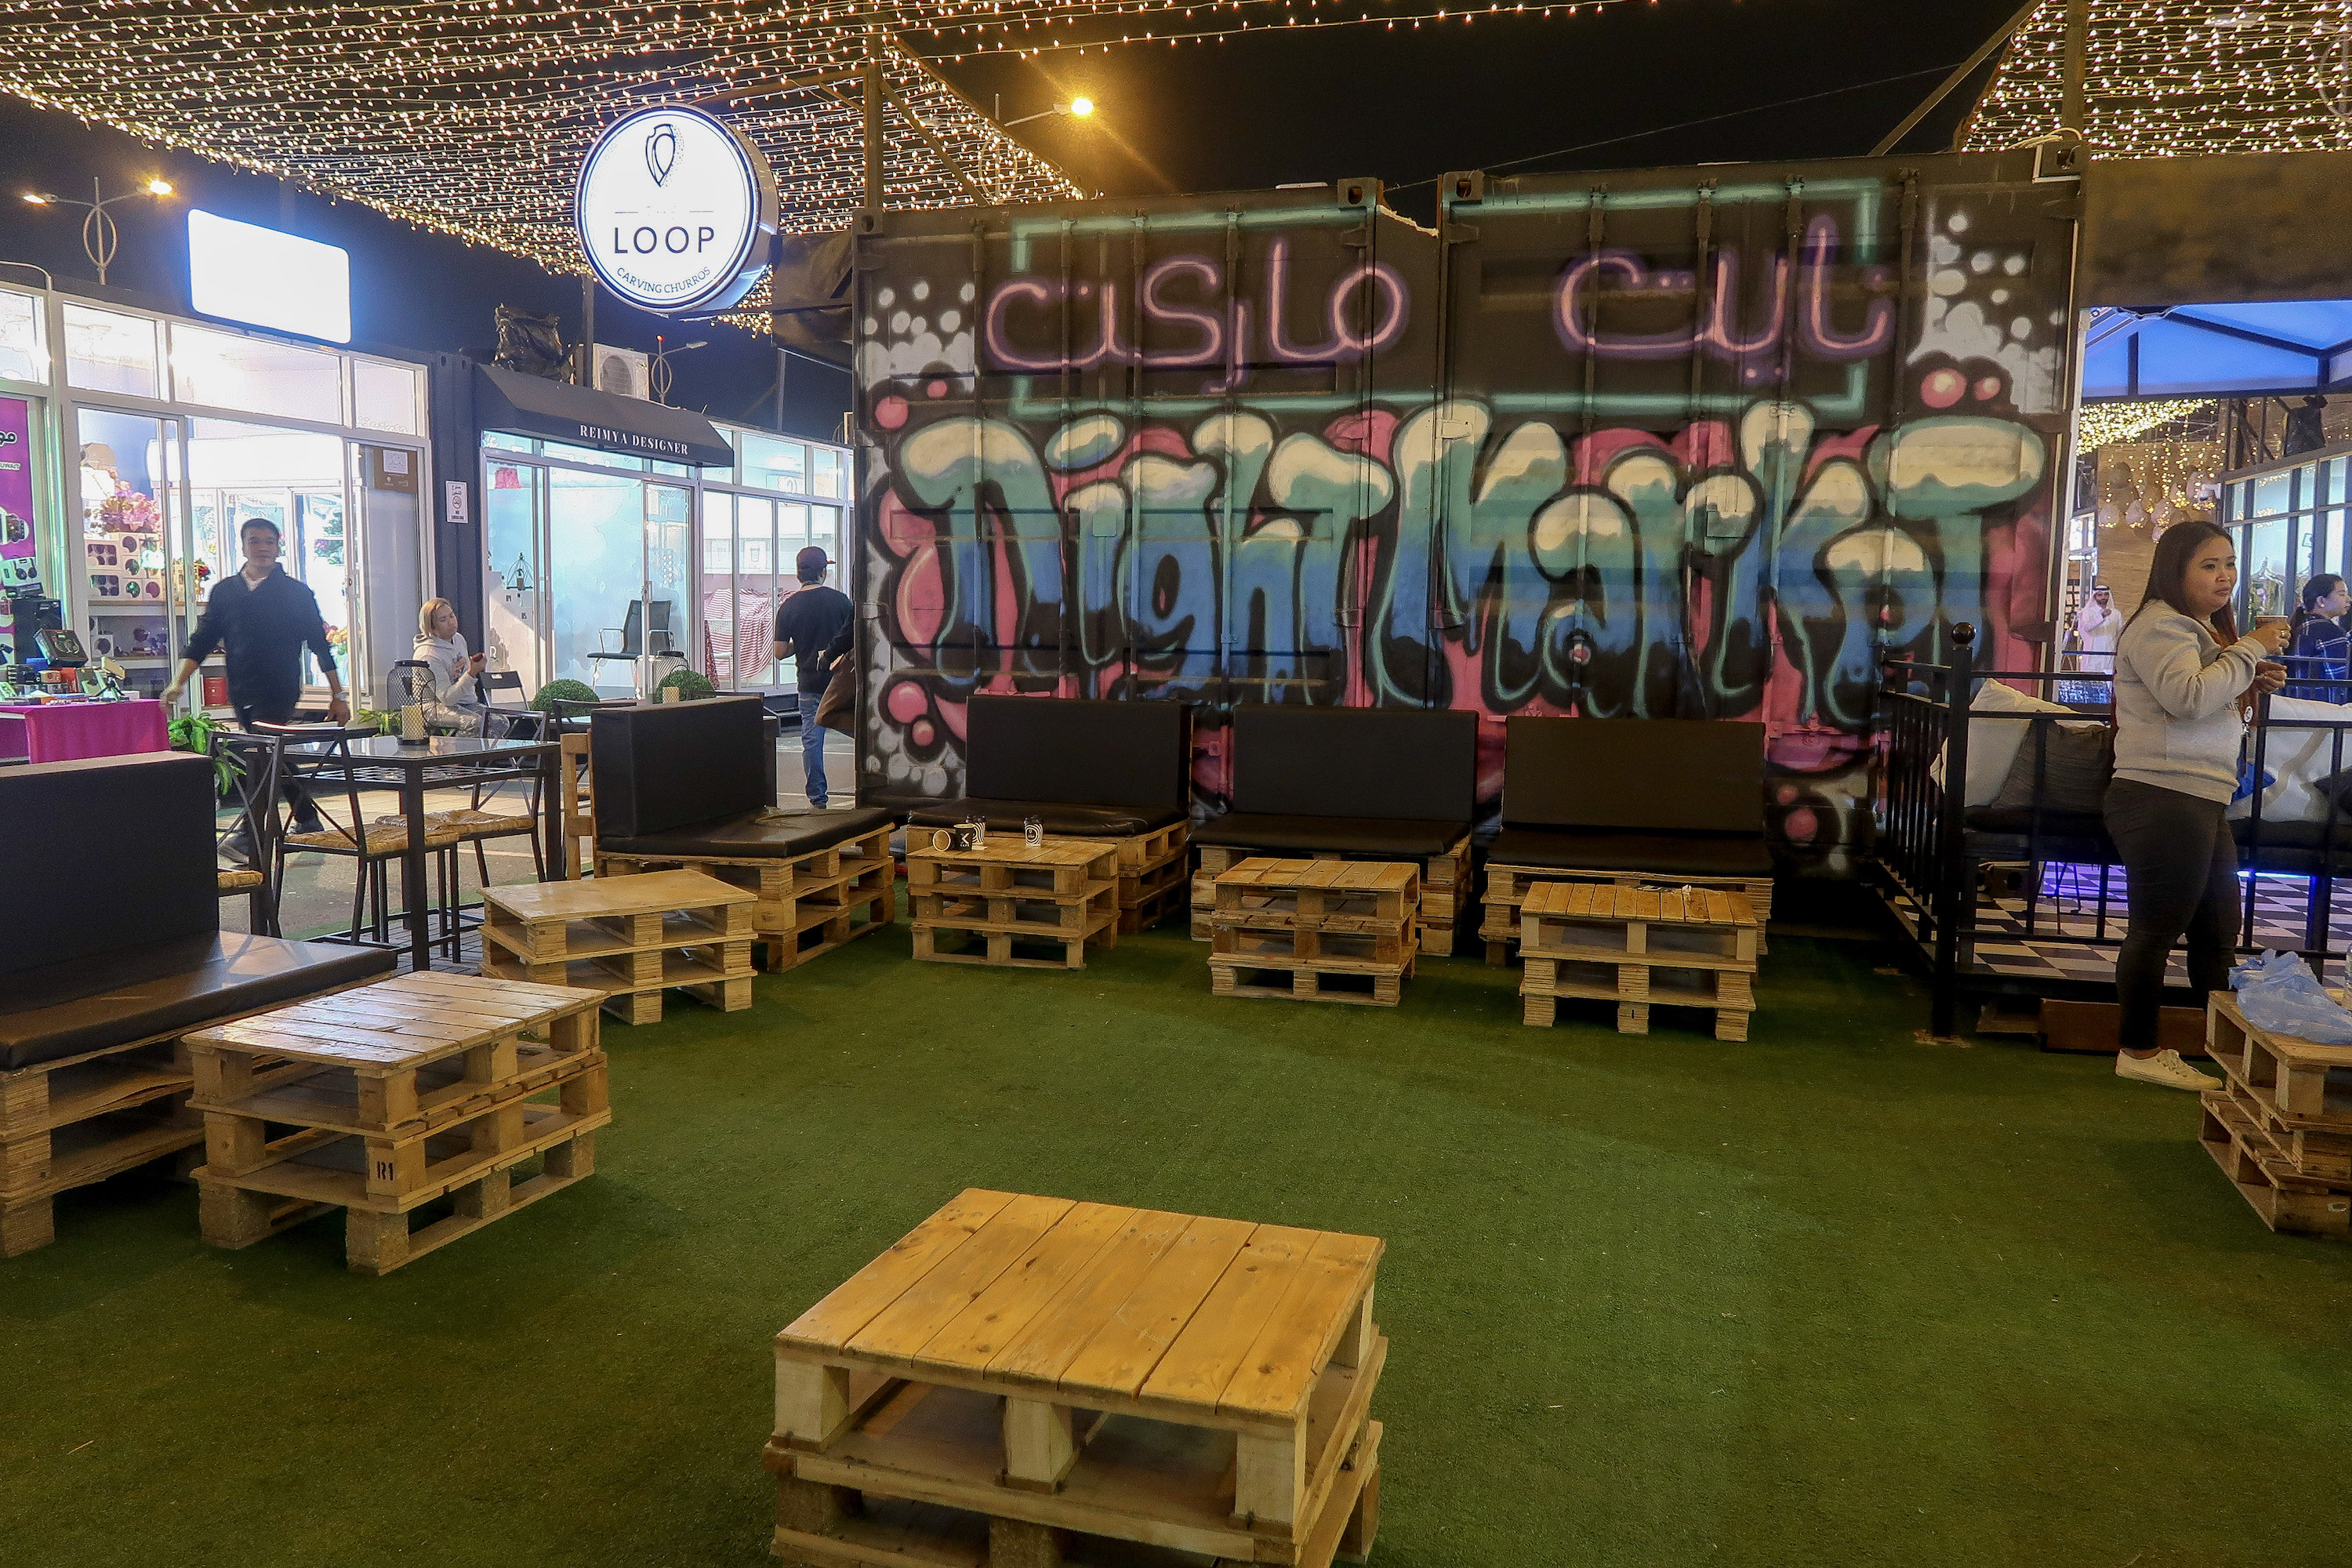 Night Market Container Park | Visit Qatar | Doha, the capital of Qatar is located in the Middle East and the World Cup 2022 location. Find out how I spent 4 days on my visit to Qatar | Travel Guide & Tips | Elle Blonde Luxury Lifestyle Destination Blog